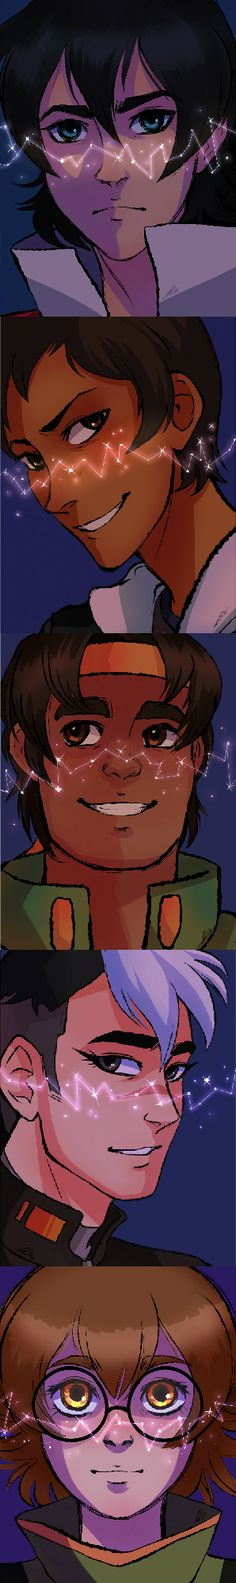 Voltron: Legendary Defender Lance has blue eyes and Keith has purple eyes! I'm sorry, but that's the only thing that's bothering me about these pictures. Form Voltron, Voltron Ships, Voltron Klance, Voltron Memes, Voltron Force, Black Christmas, Aliens, Eyeliner, Space Cat